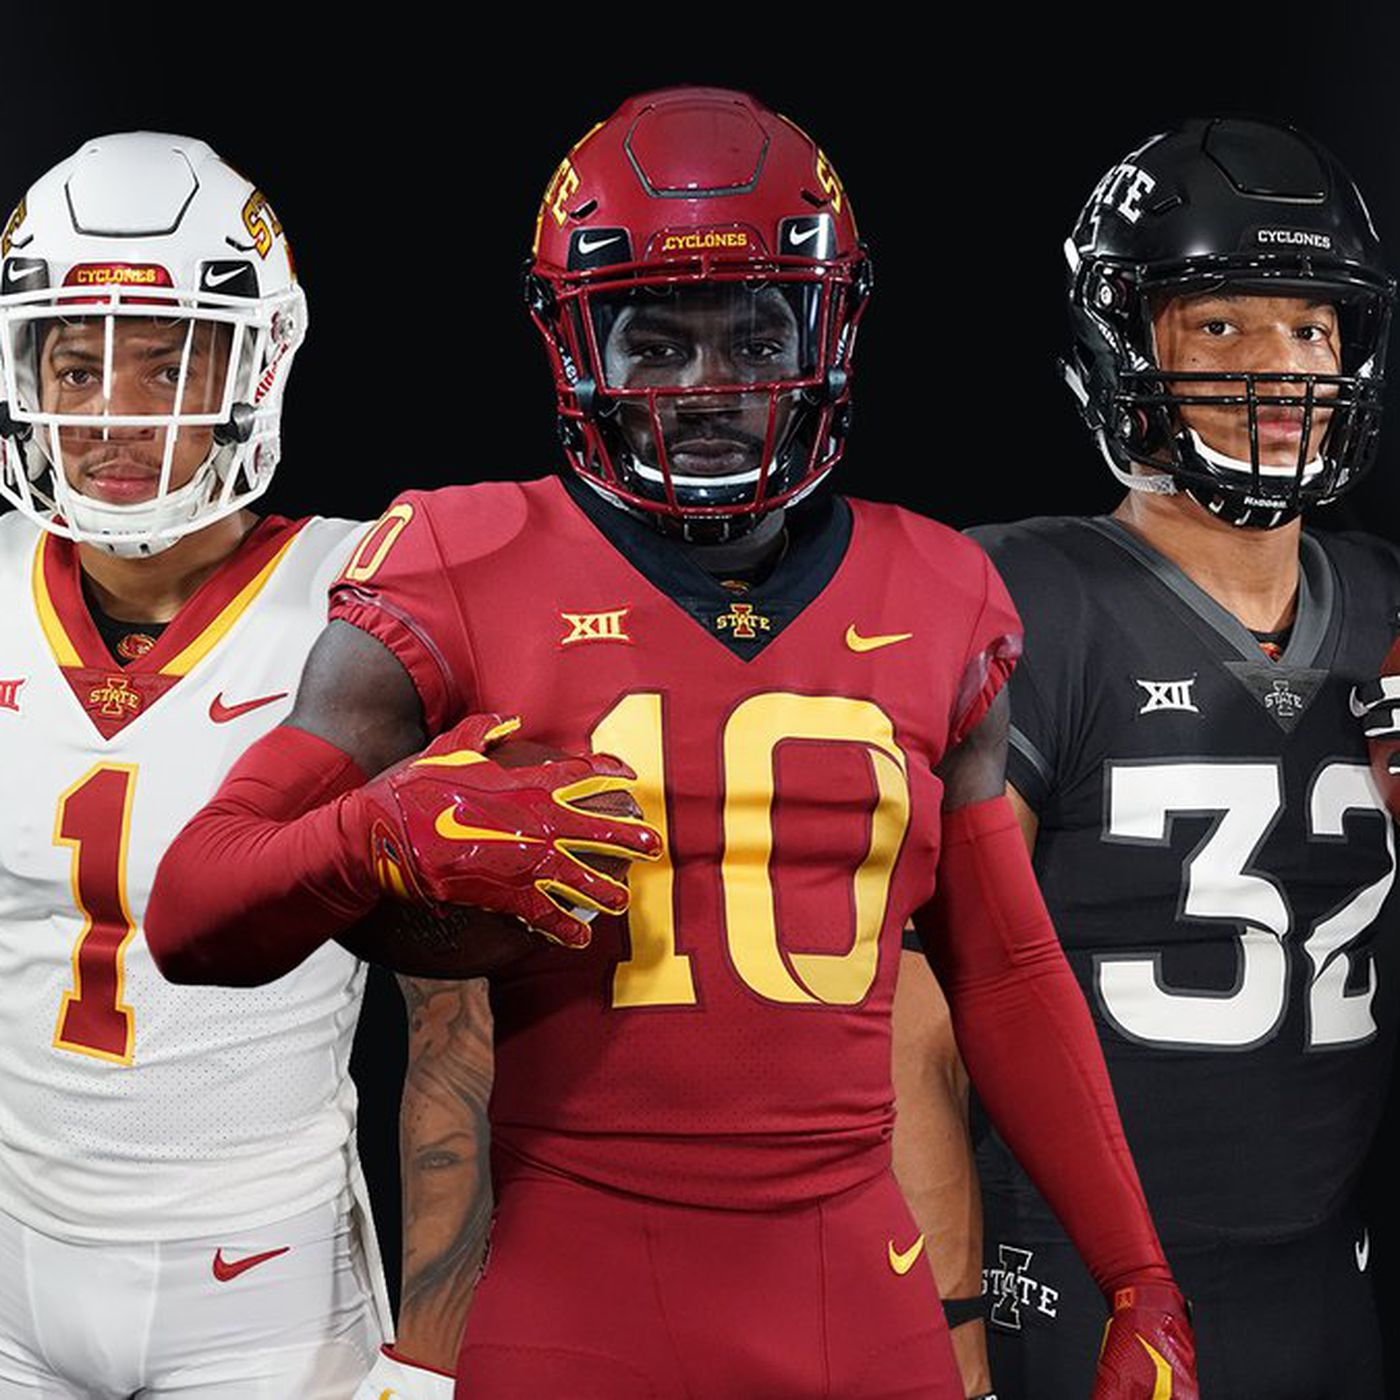 outlet store 85563 6b5fc Predicting the Uniform Combinations for Next Season - Wide ...